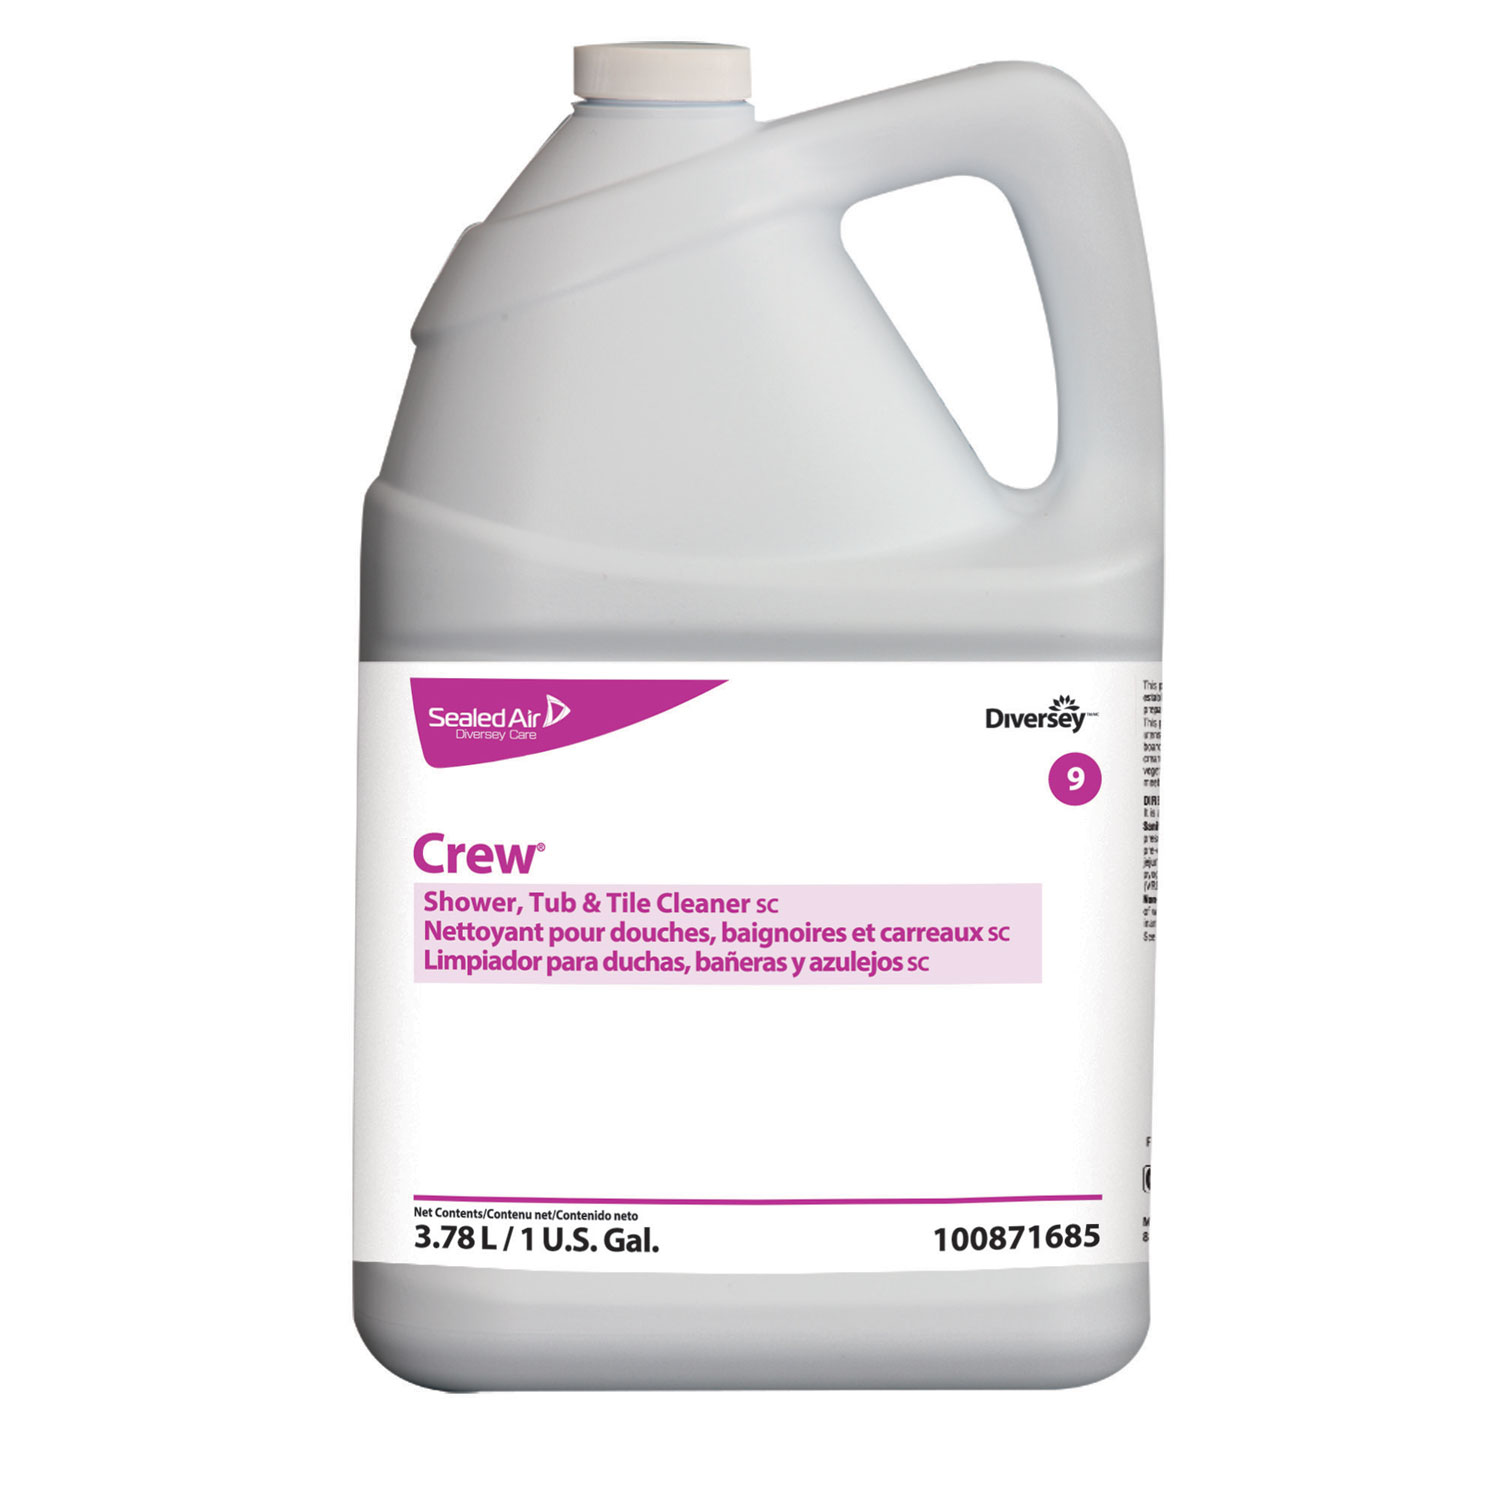 Crew Concentrated Shower/Tub/Tile Cleaner, Fresh Scent, 1 gal Bottle, 4/Carton